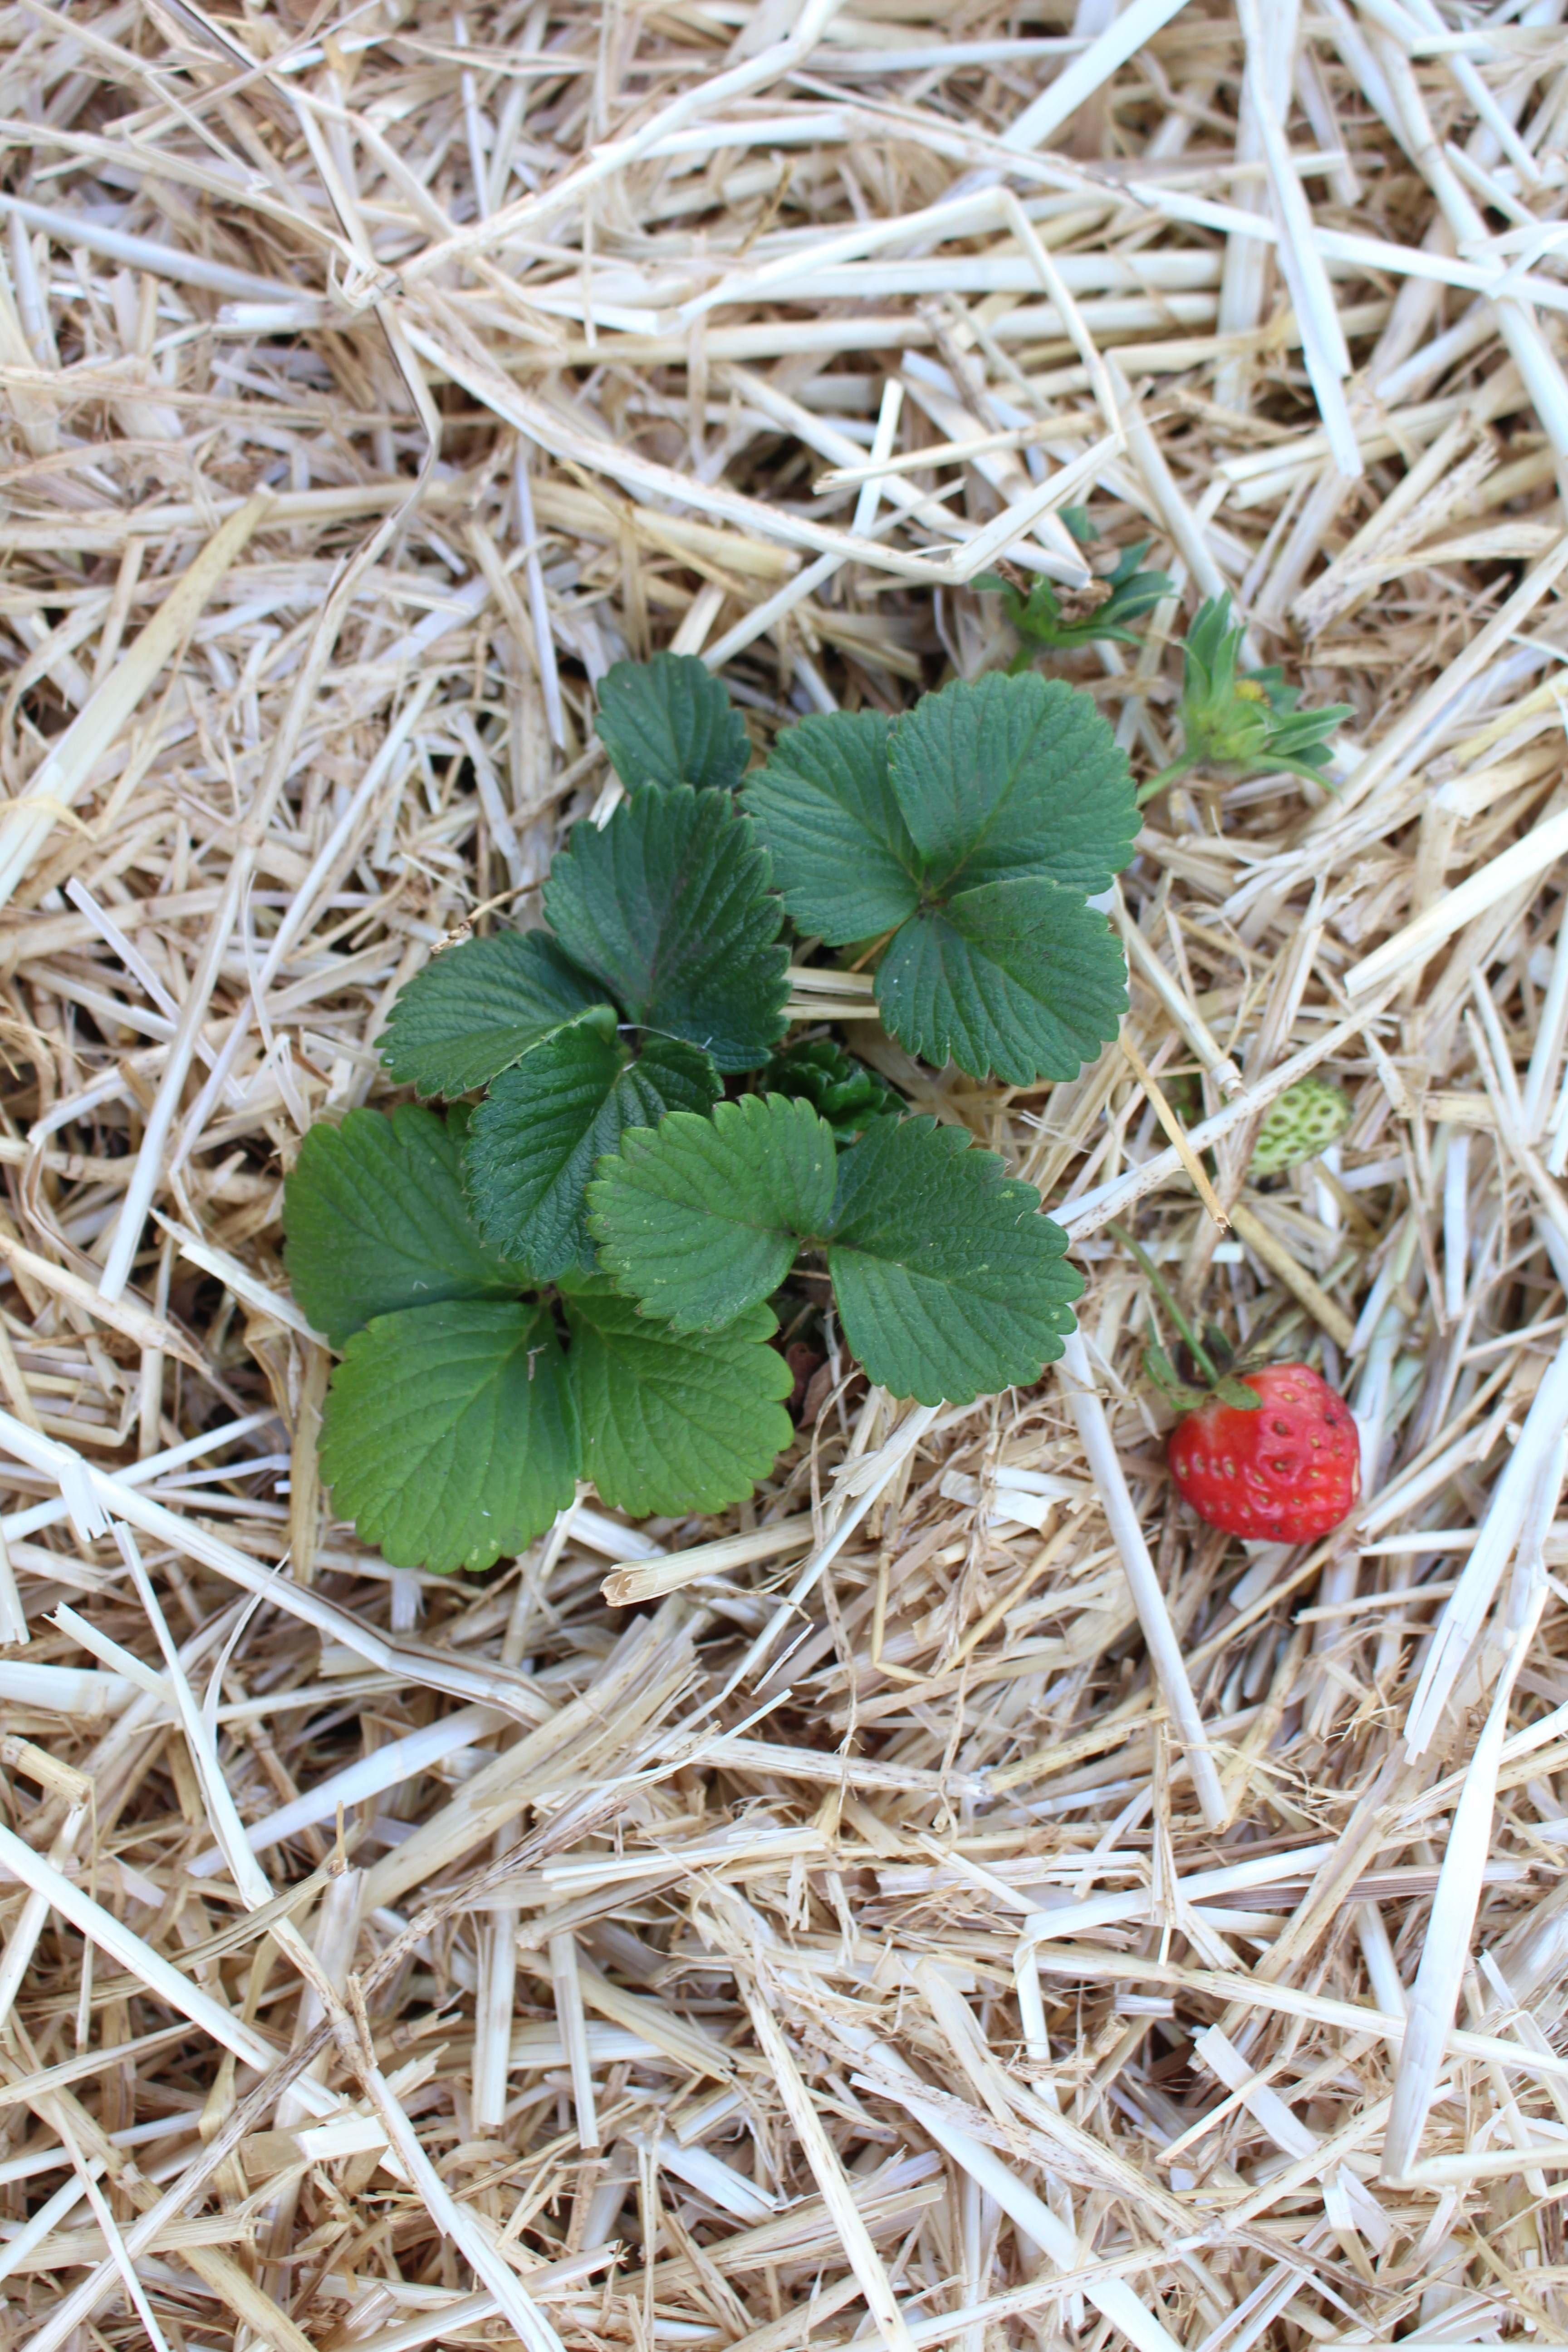 First Strawberry of the Season